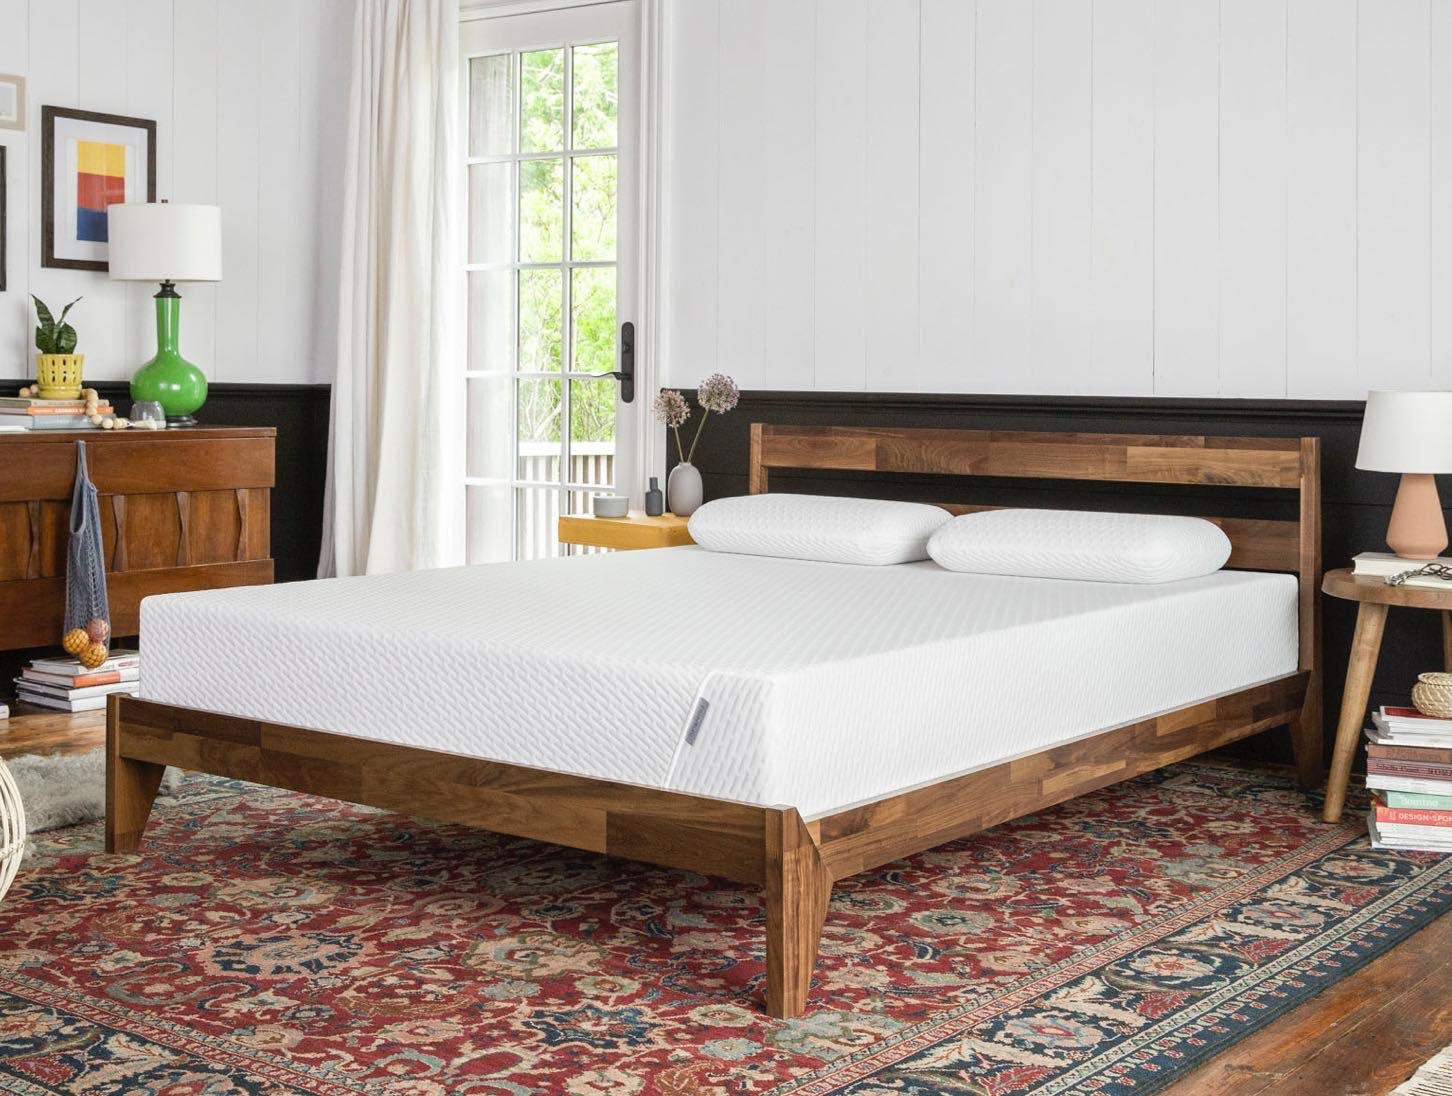 Tuft & Needle Twin Mattress, Bed in a Box, T&N Adaptive Foam, Sleeps Cooler with More Pressure Relief & Support Than Memory Foam, Certi-PUR & Oeko-Tex 100 Certified, 10-Year Warranty.